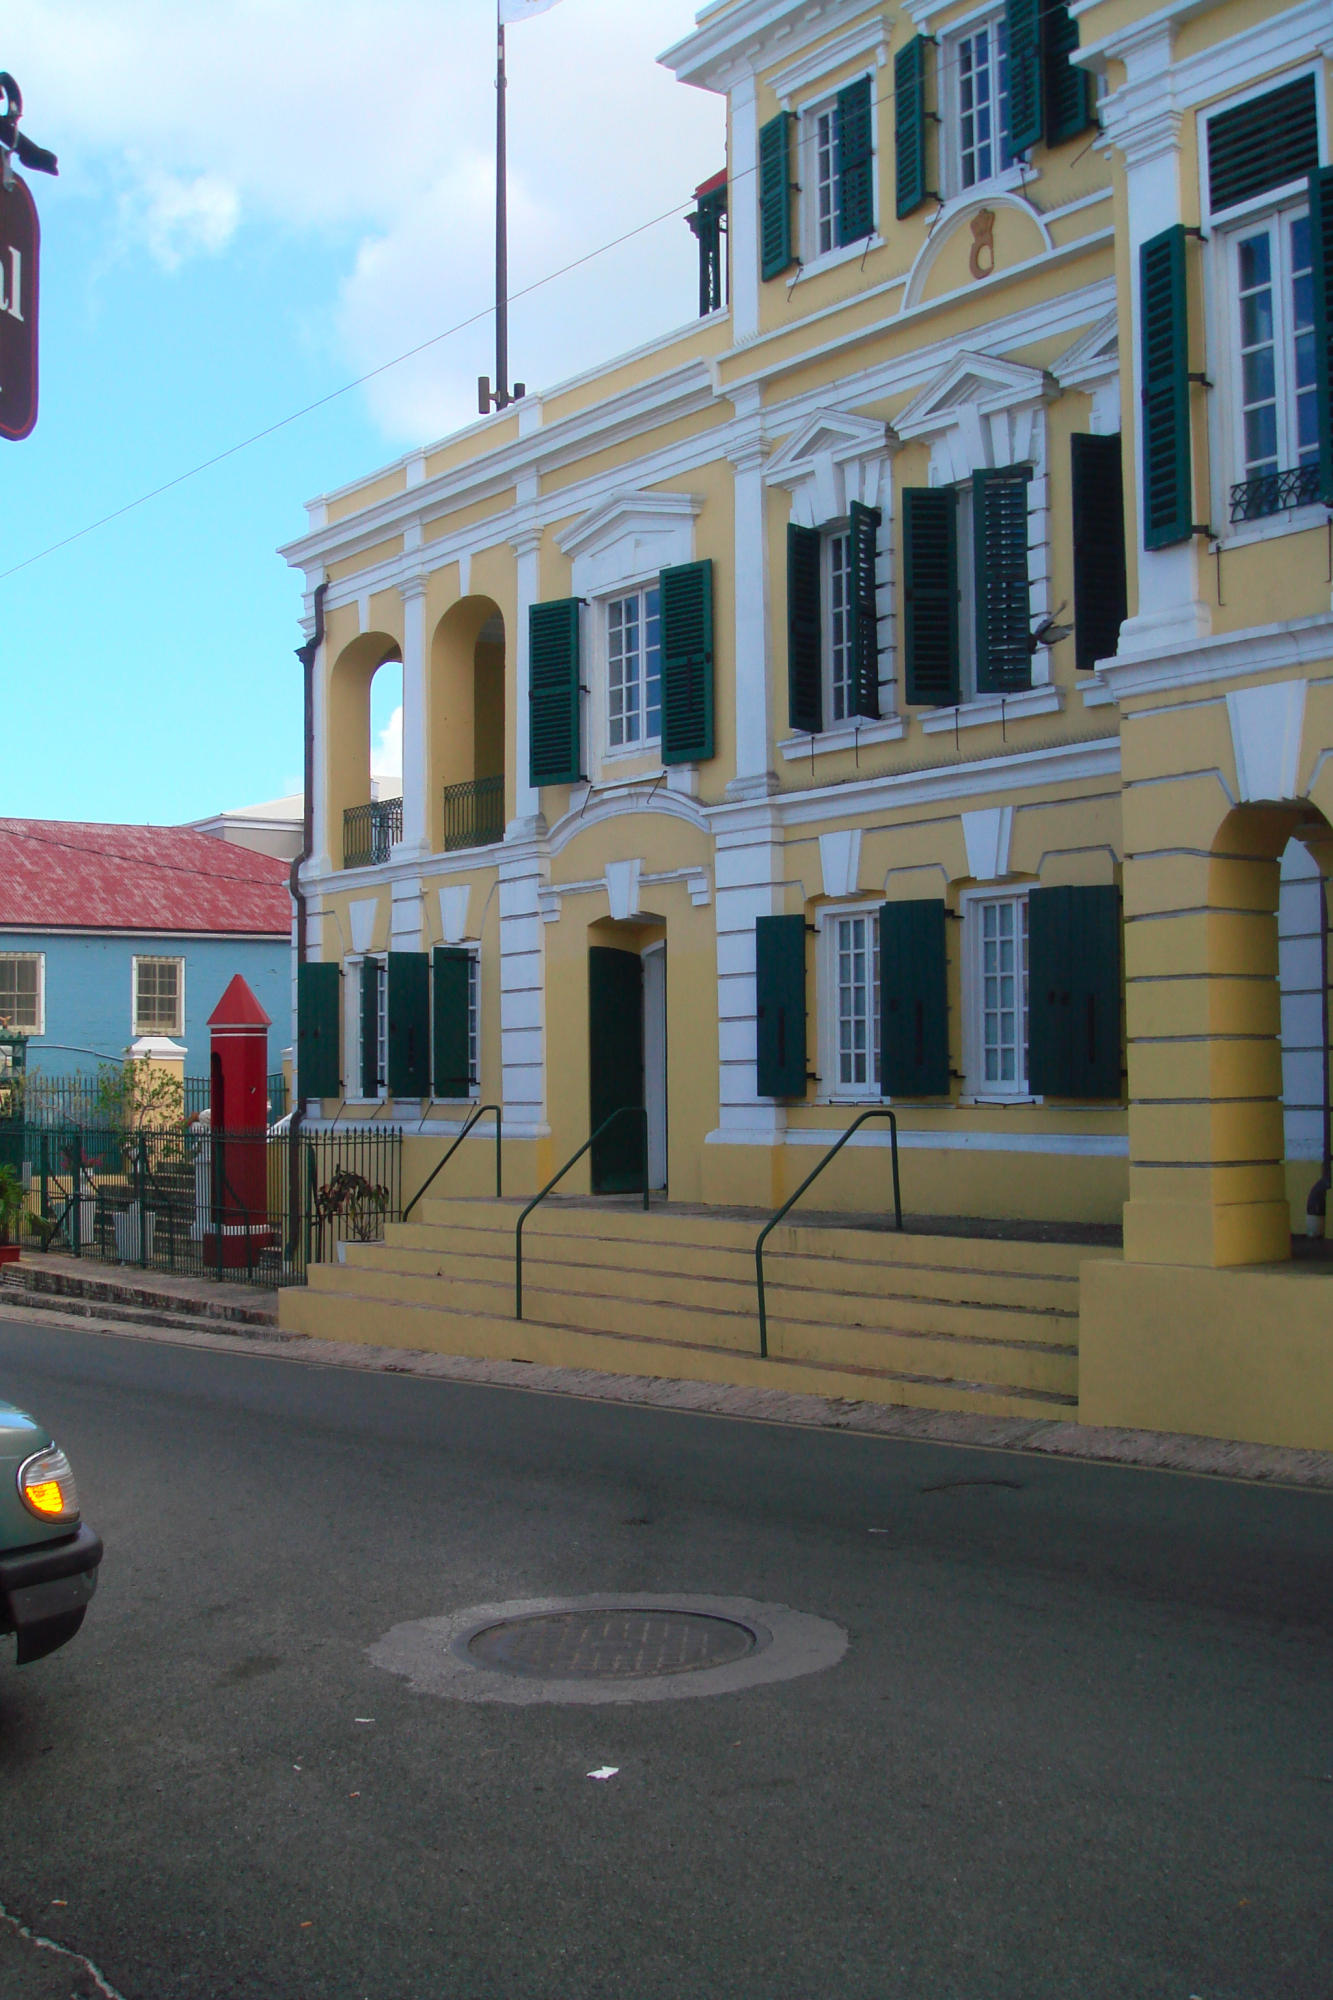 Government House across the street